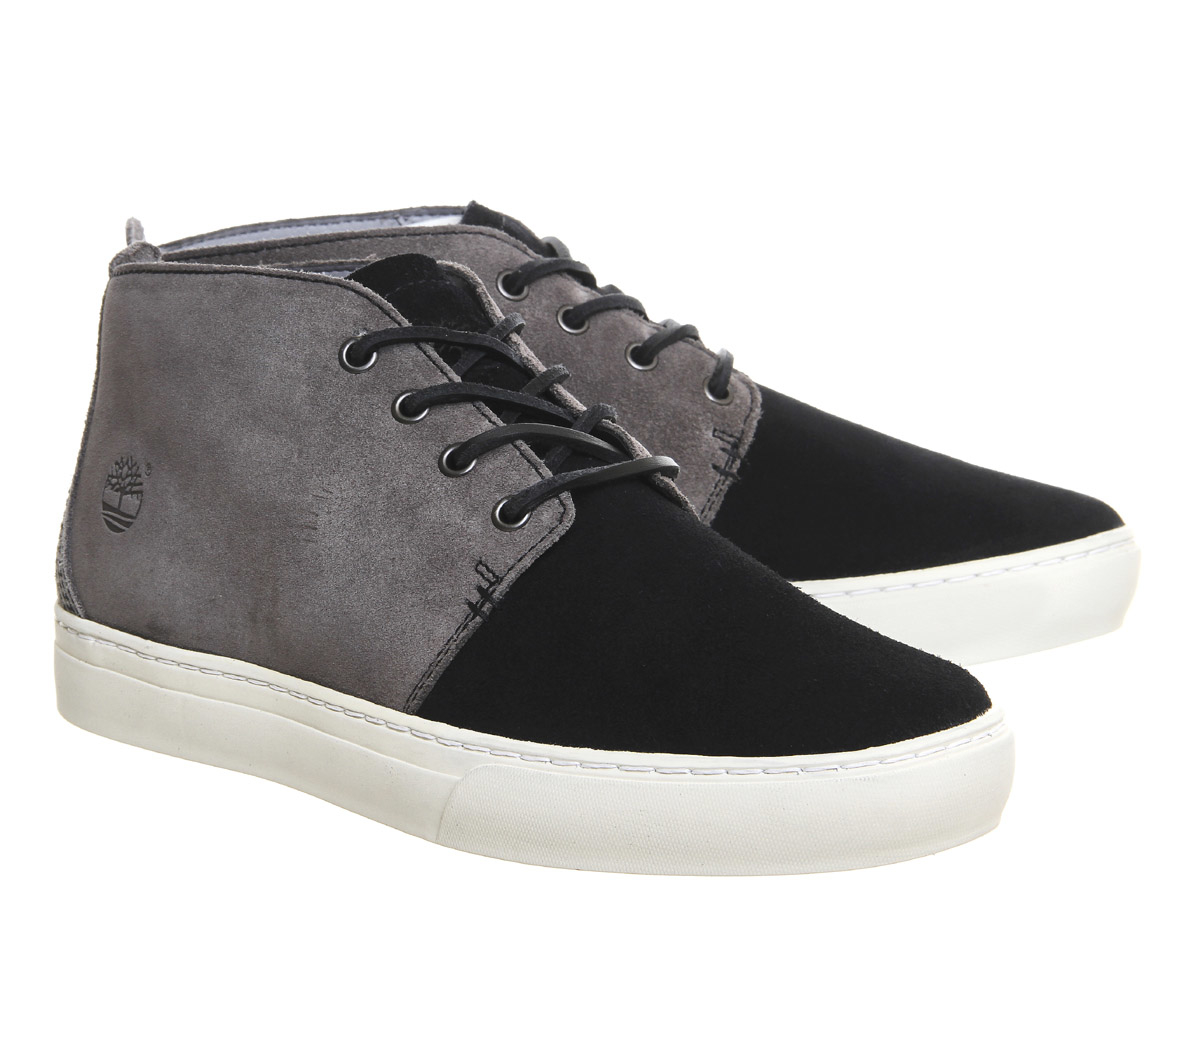 timberland 2 0 cupsole suede chukka boots in black for